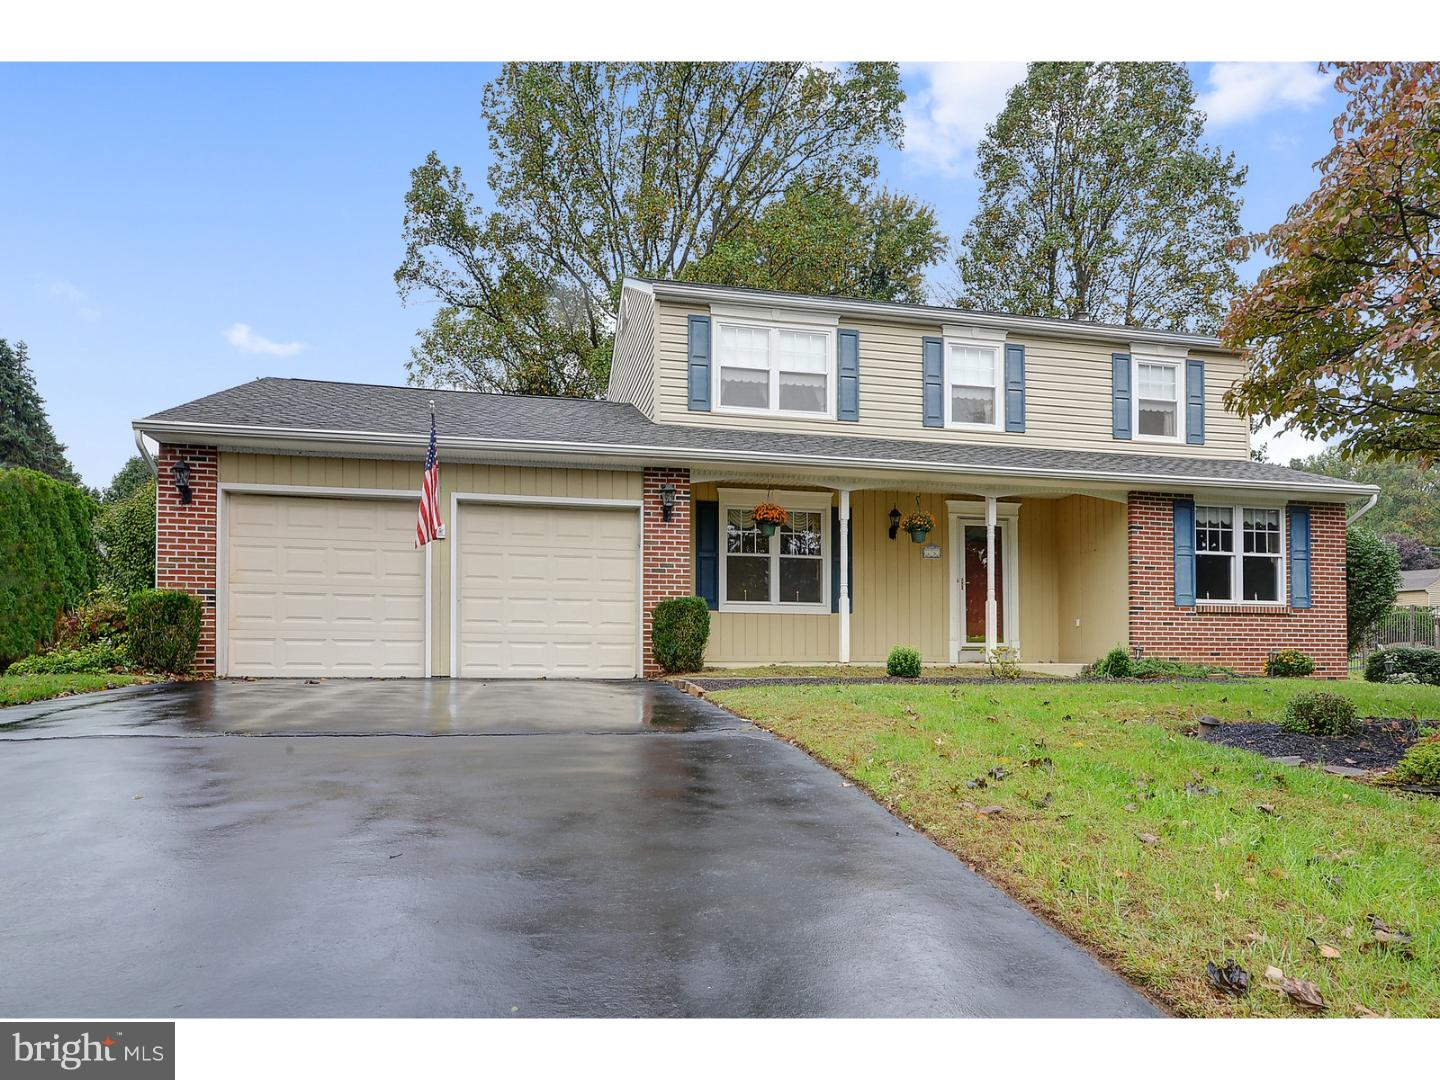 109 SYCAMORE DRIVE, LANGHORNE, PA 19053